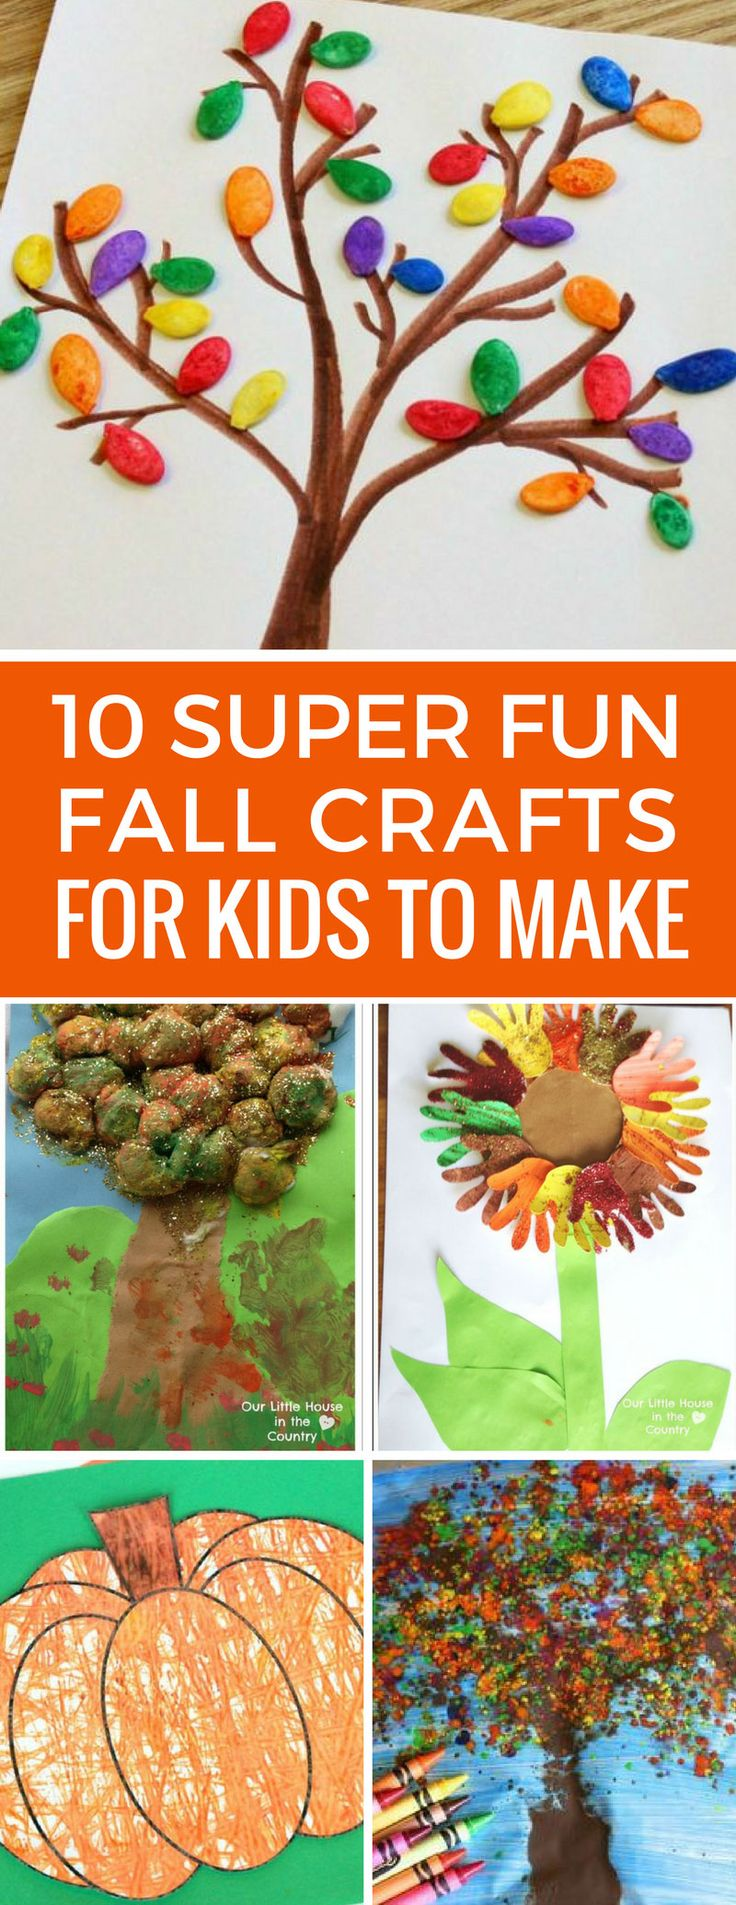 Easy Fall Kids Crafts That Anyone Can Make: Best 25+ Food Groups For Kids Ideas On Pinterest